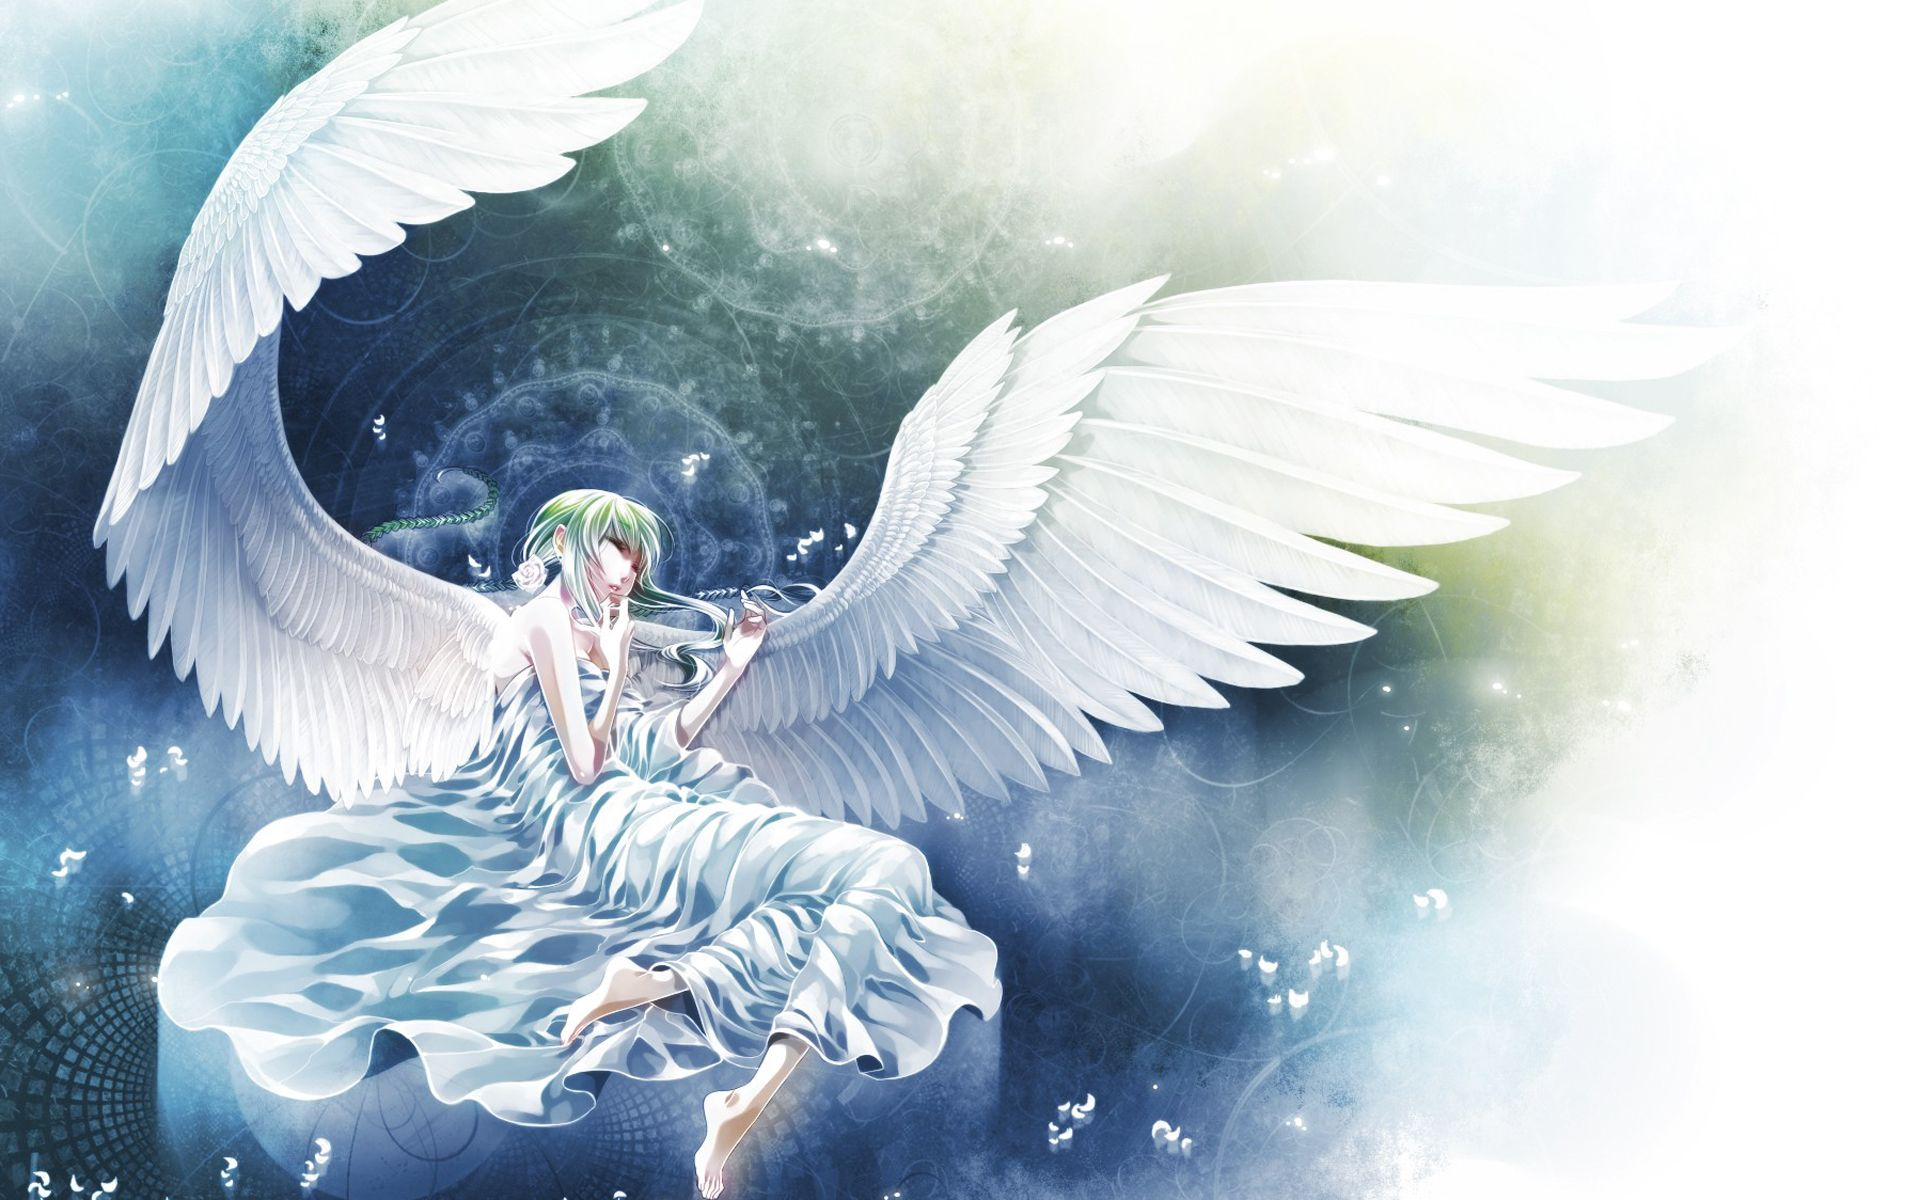 Anime Angel Wallpaper Anime Angel Girl Anime Angel Angel Wallpaper